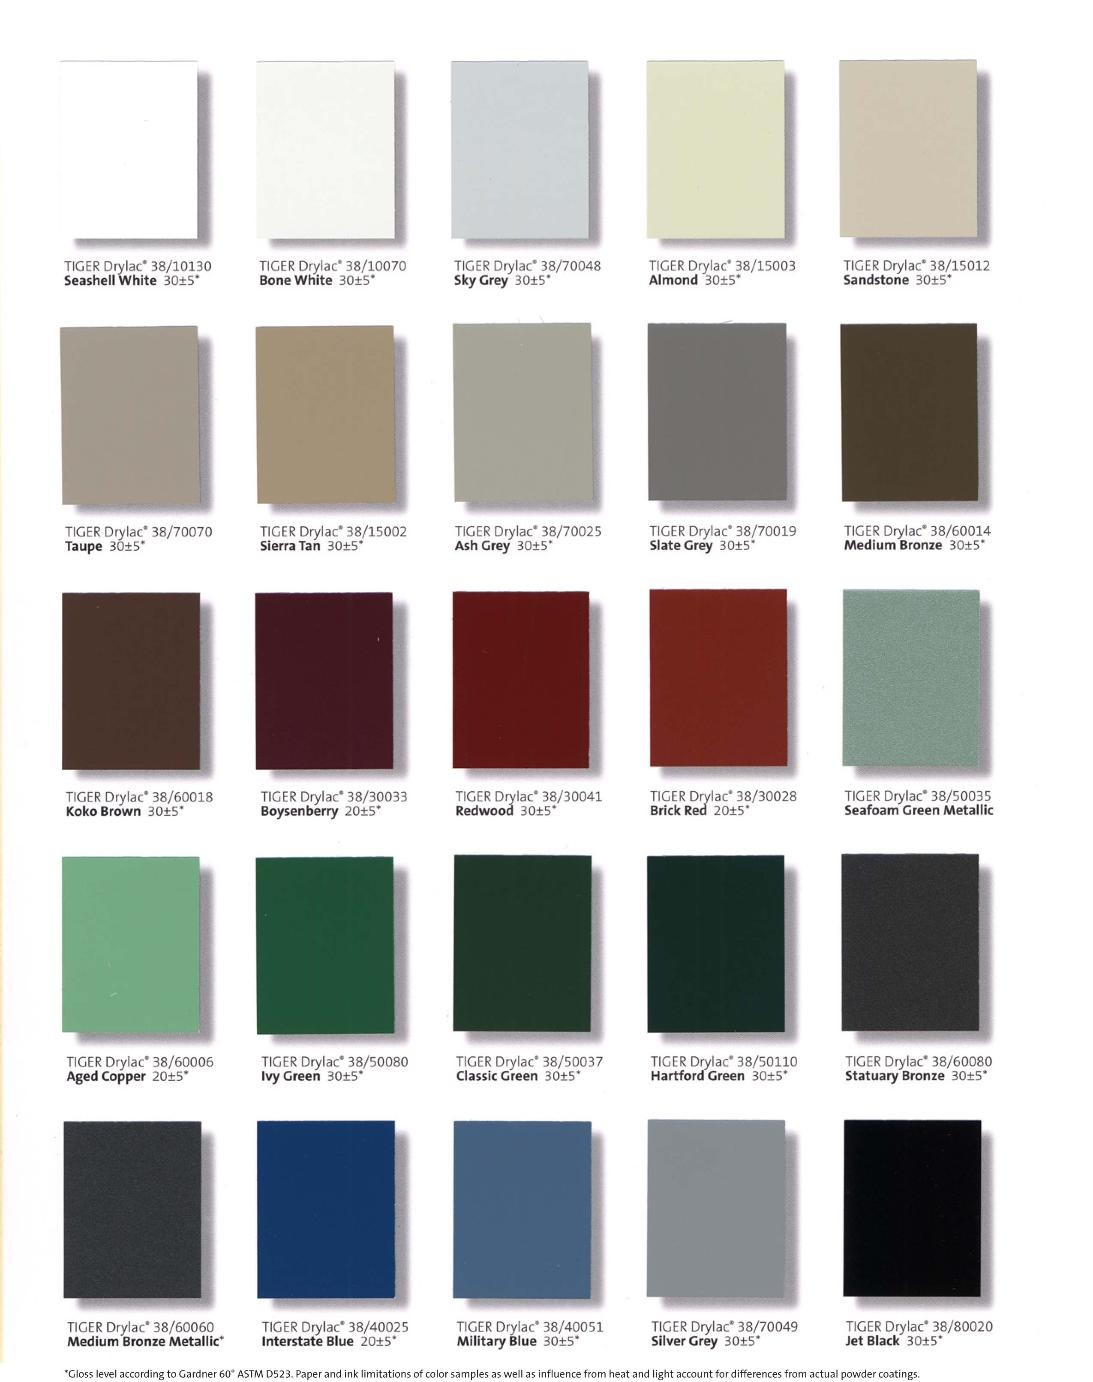 Tiger drylac color chart gallery free any chart examples tiger powder coat color chart gallery free any chart examples tiger powder coat color chart choice nvjuhfo Image collections